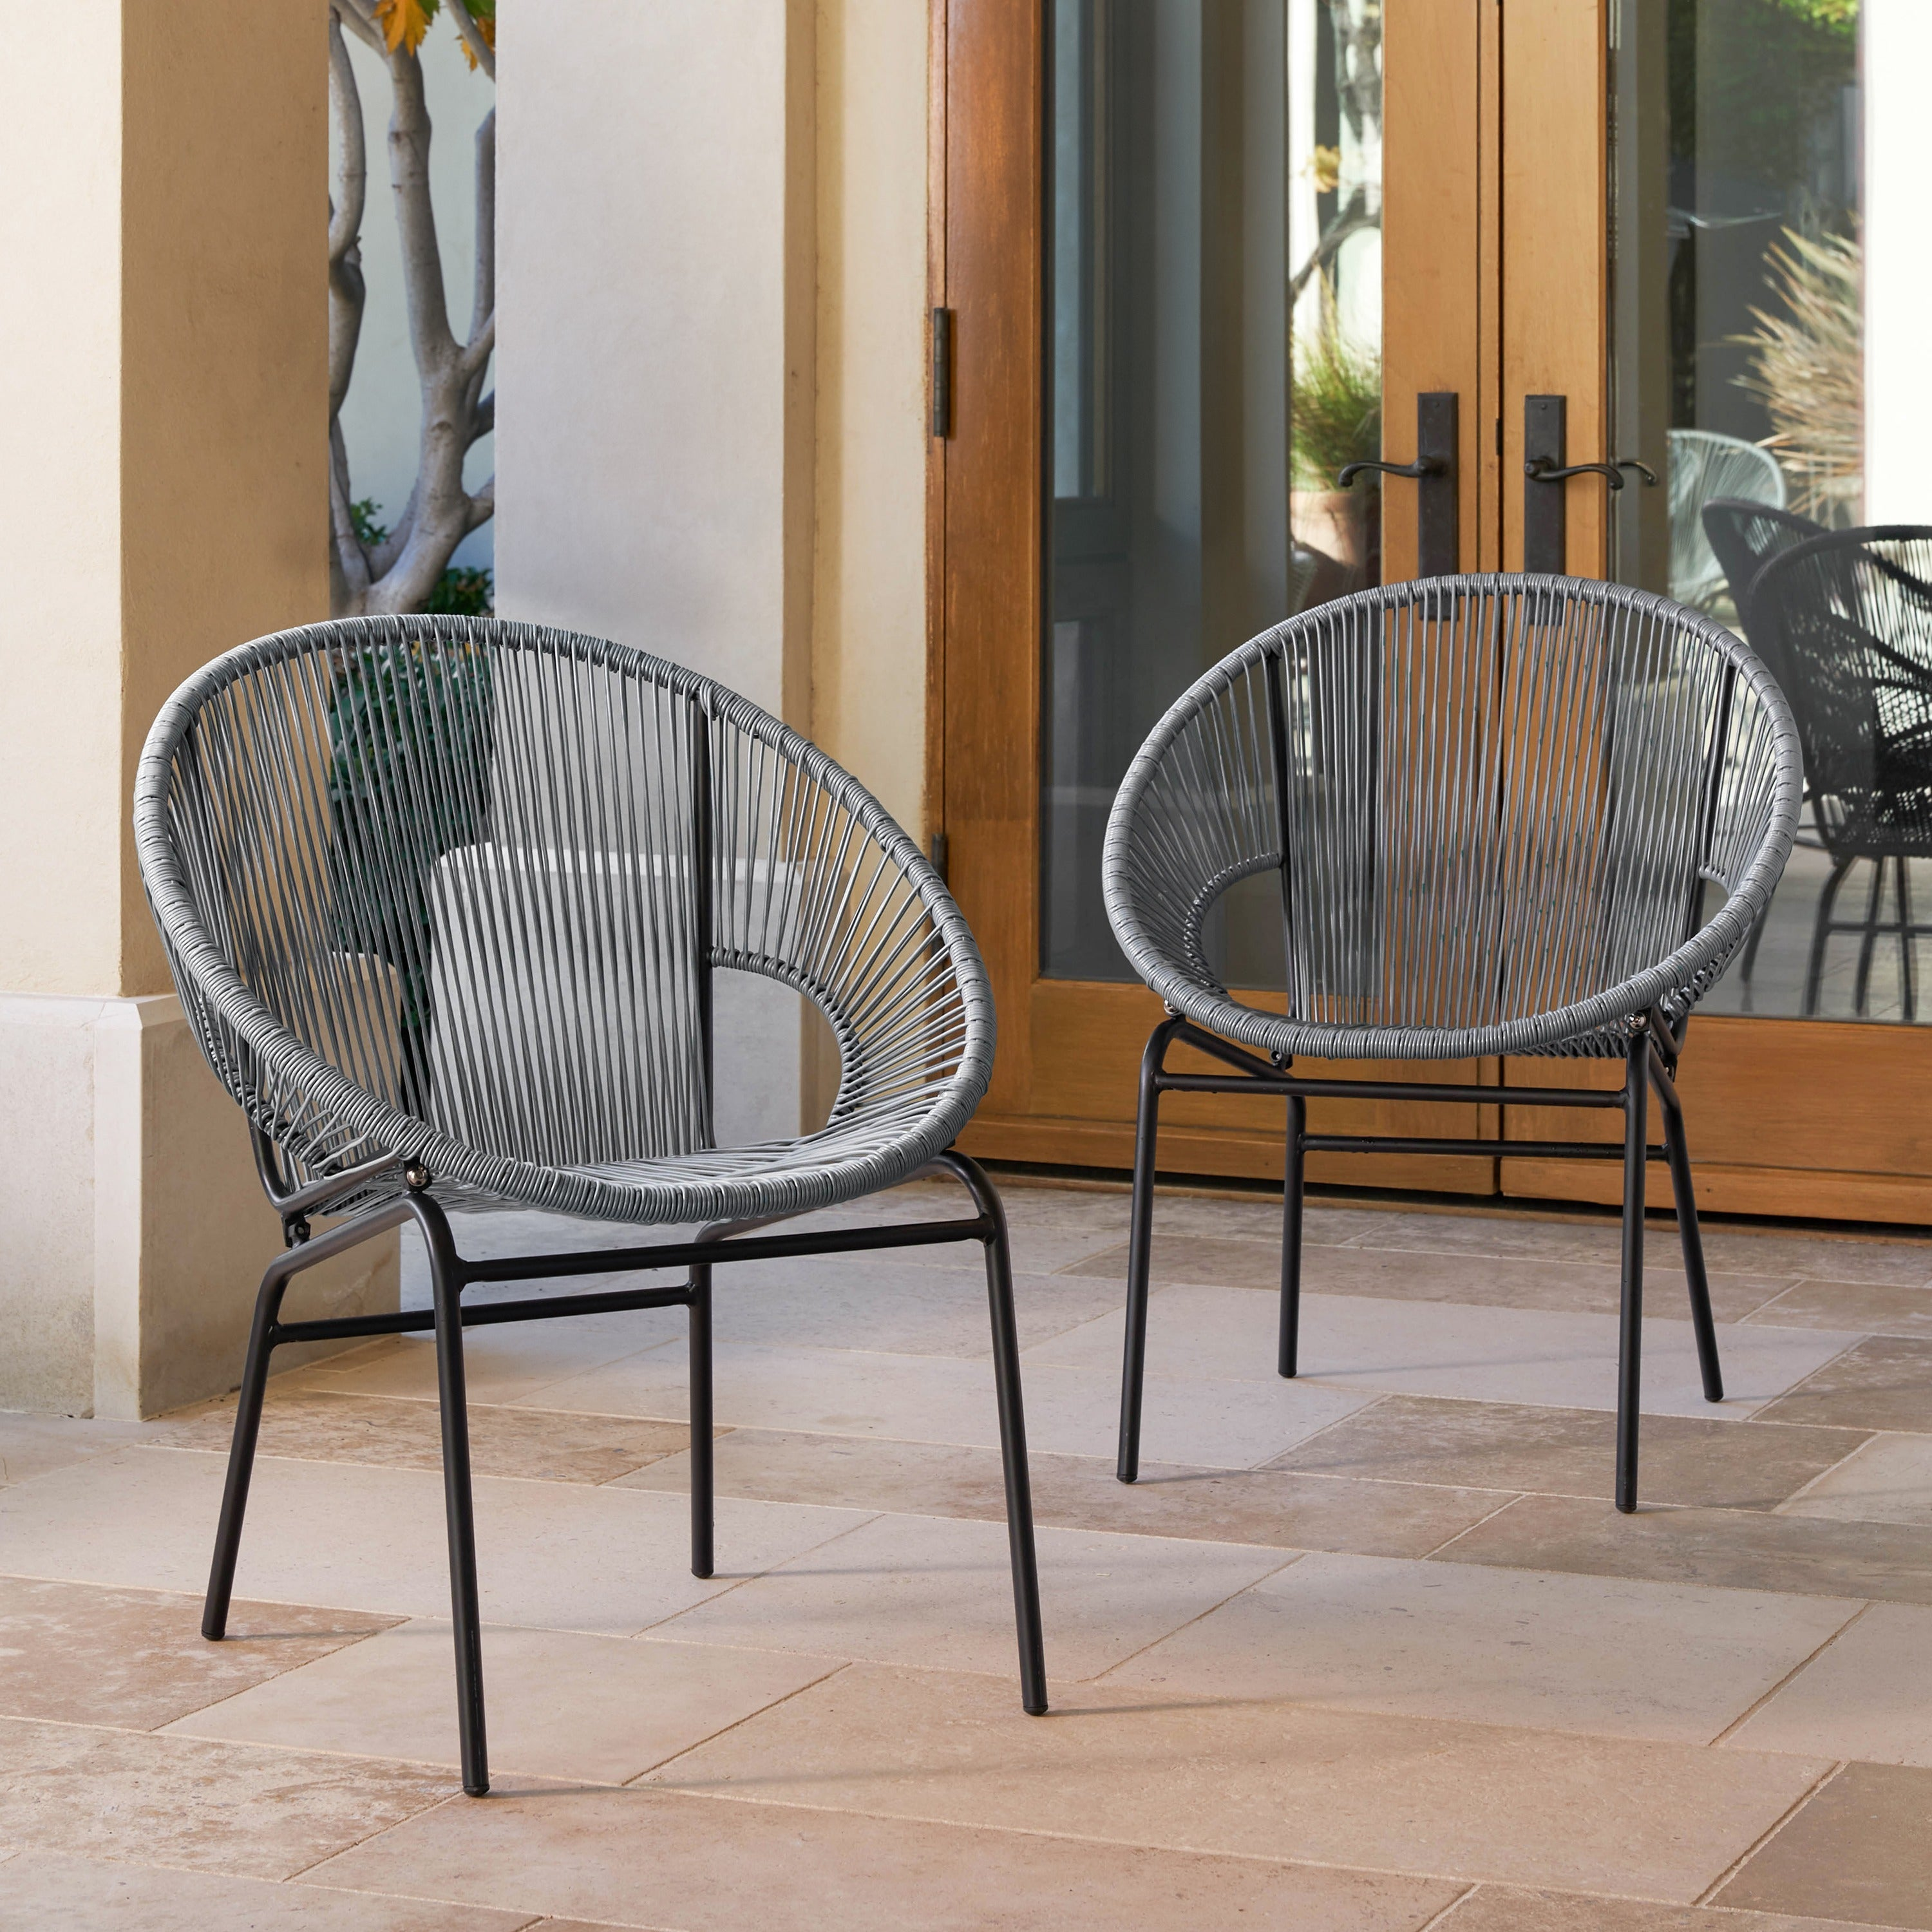 Sarcelles Woven Wicker Patio Chairs by Corvus Set of 2 Free